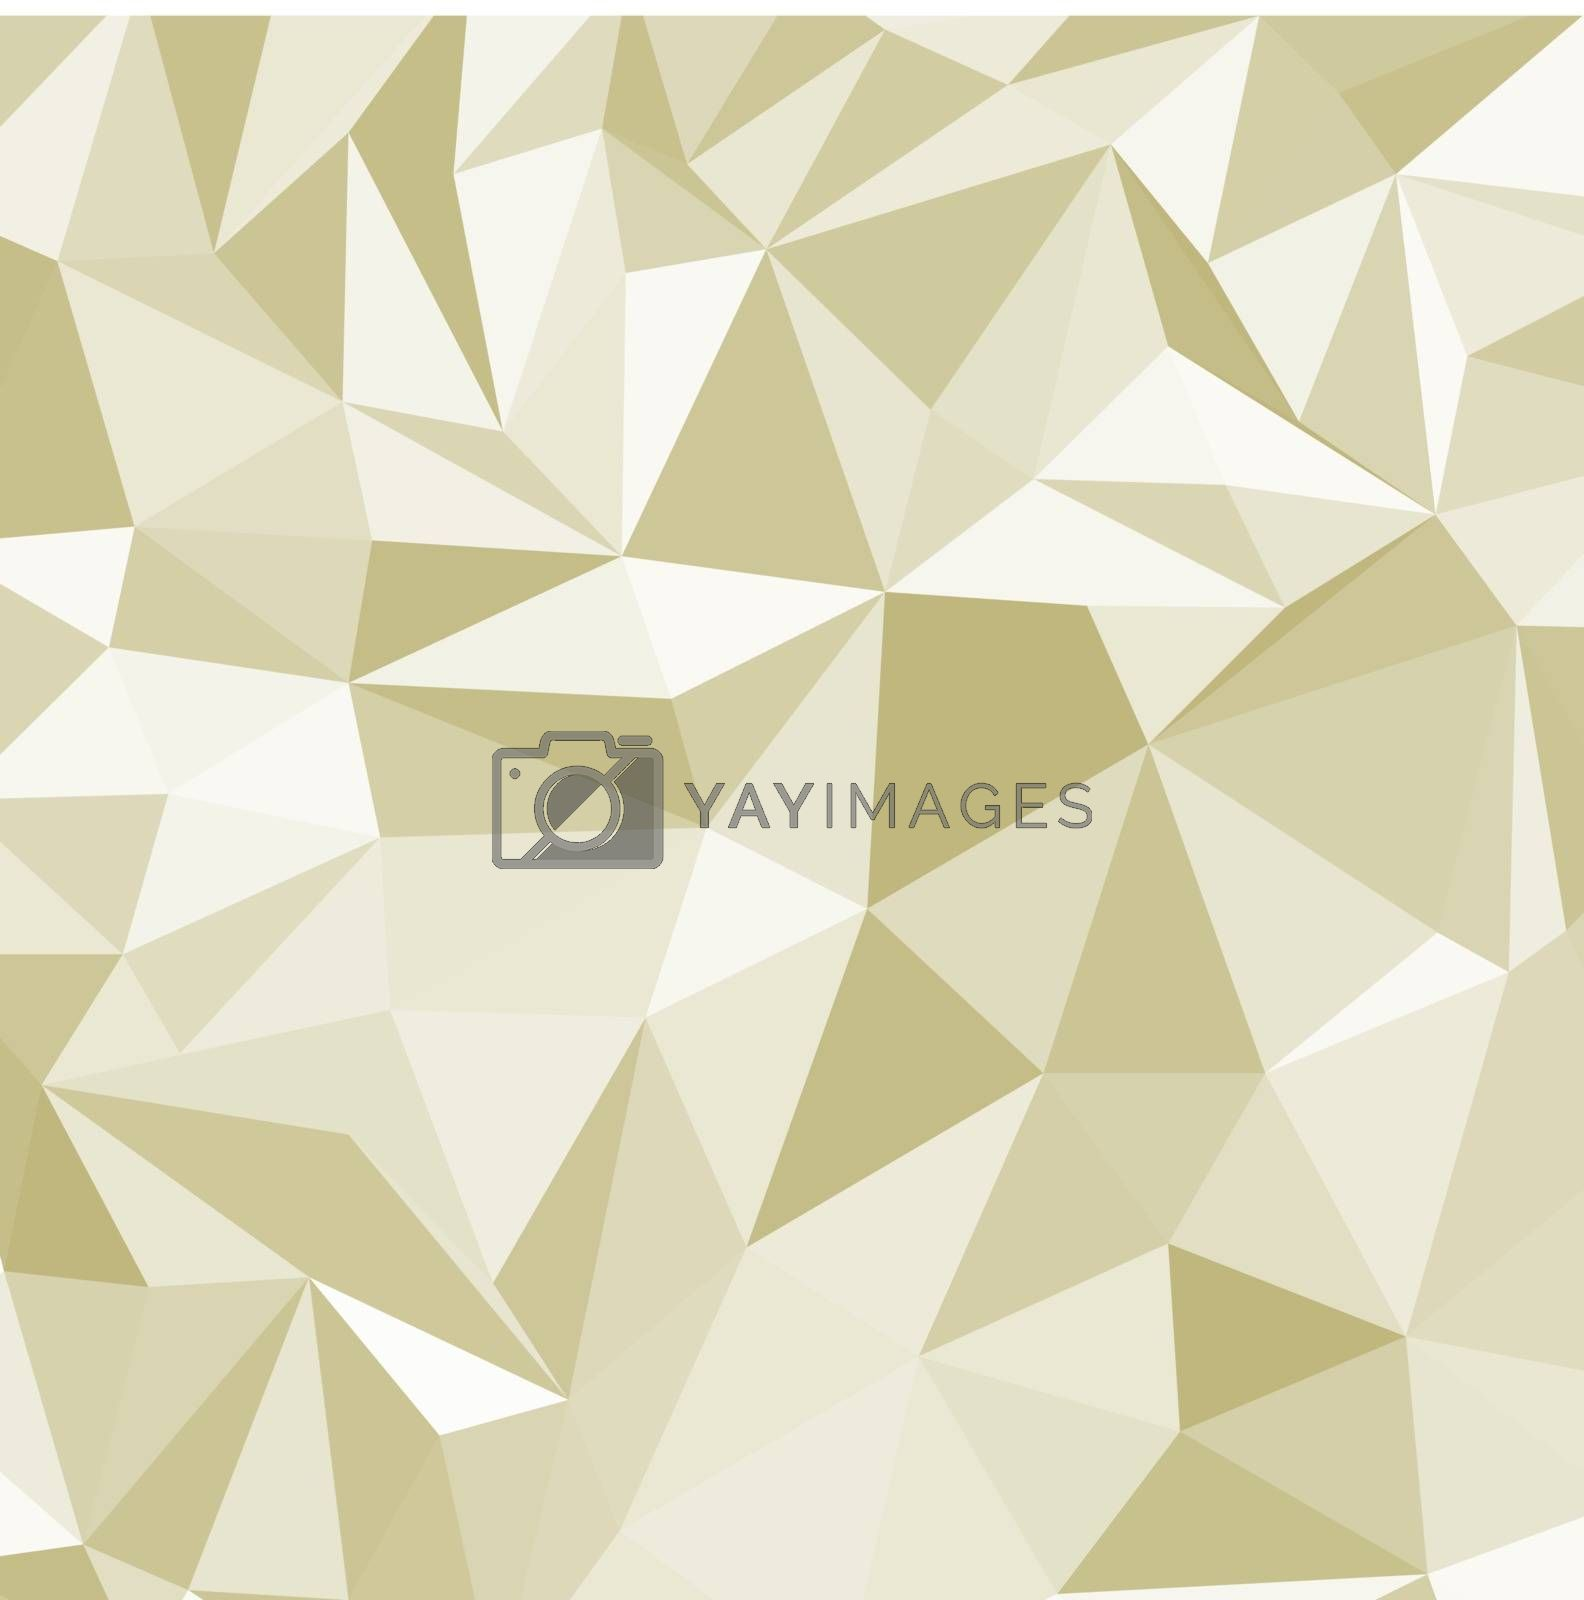 Abstract 3d wire vector background. EPS 8 vector file included